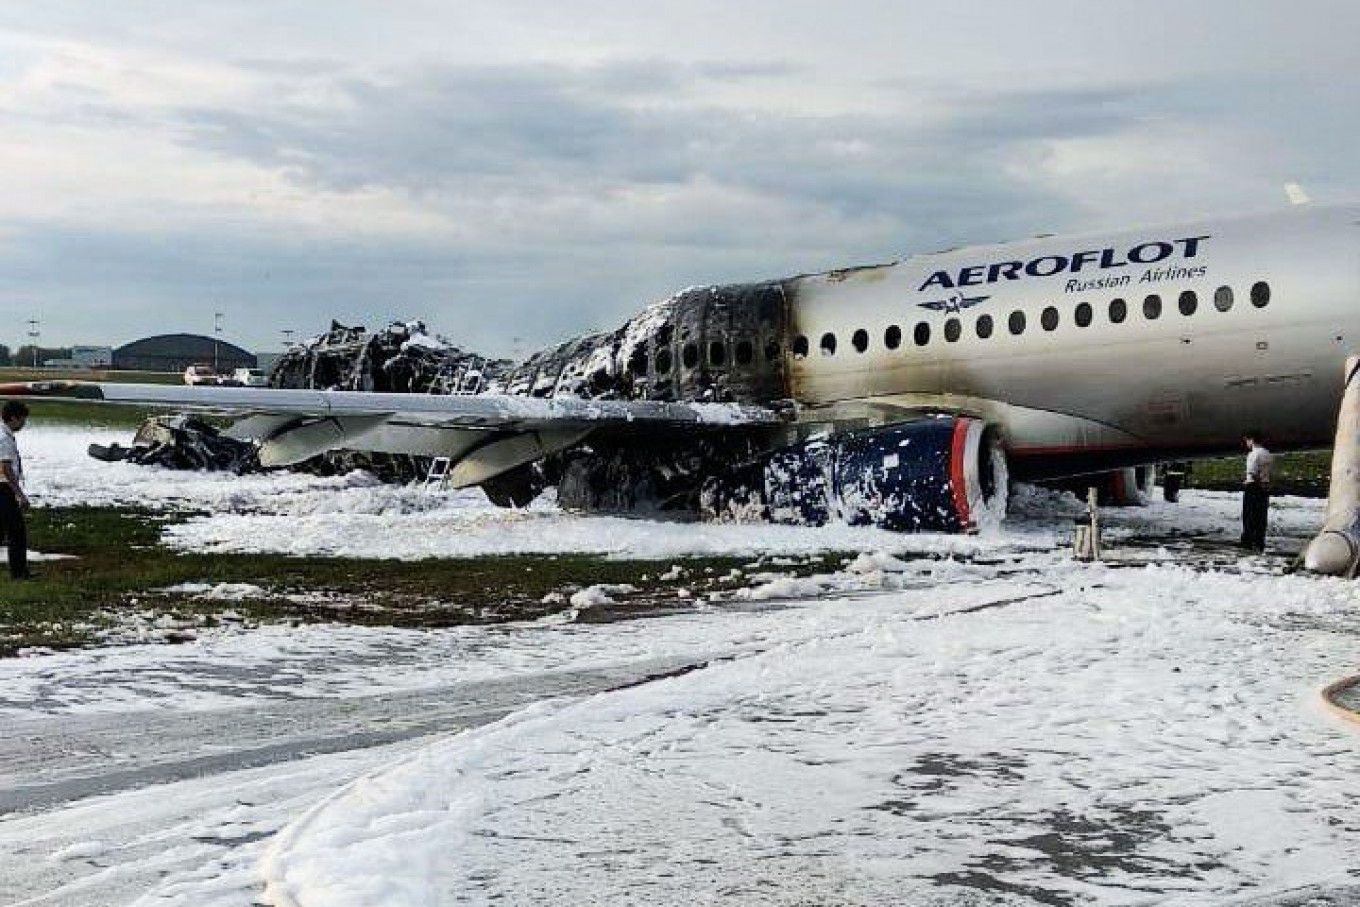 A National Disappointment: What Went Wrong With the Sukhoi Superjet